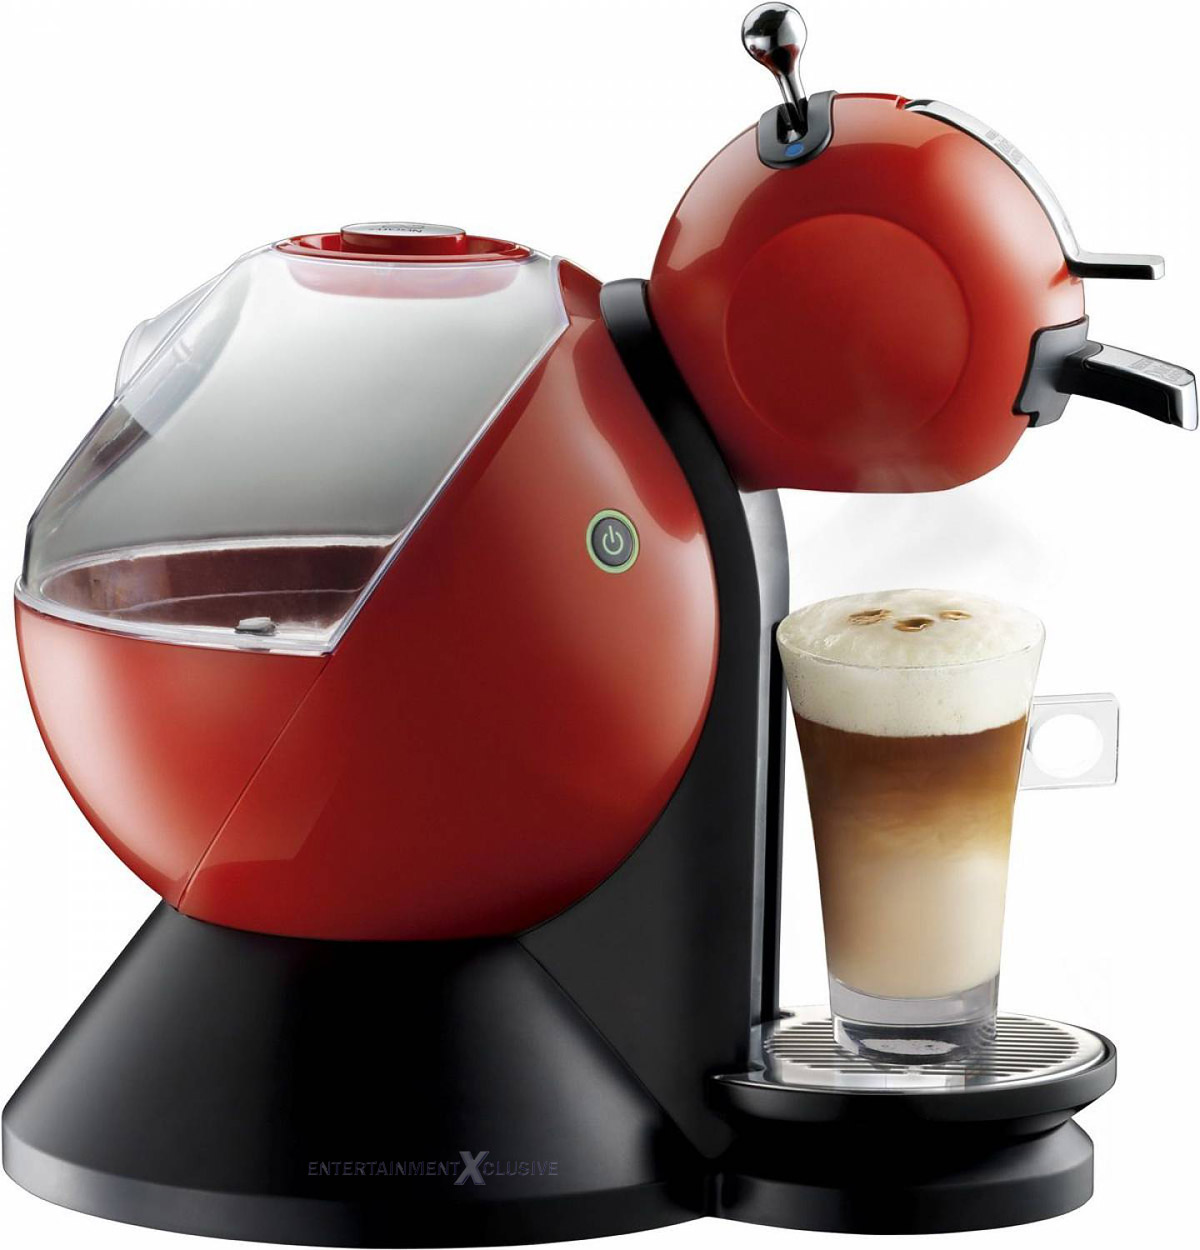 nescaf dolce gusto by krups kp210640 coffee machine red. Black Bedroom Furniture Sets. Home Design Ideas